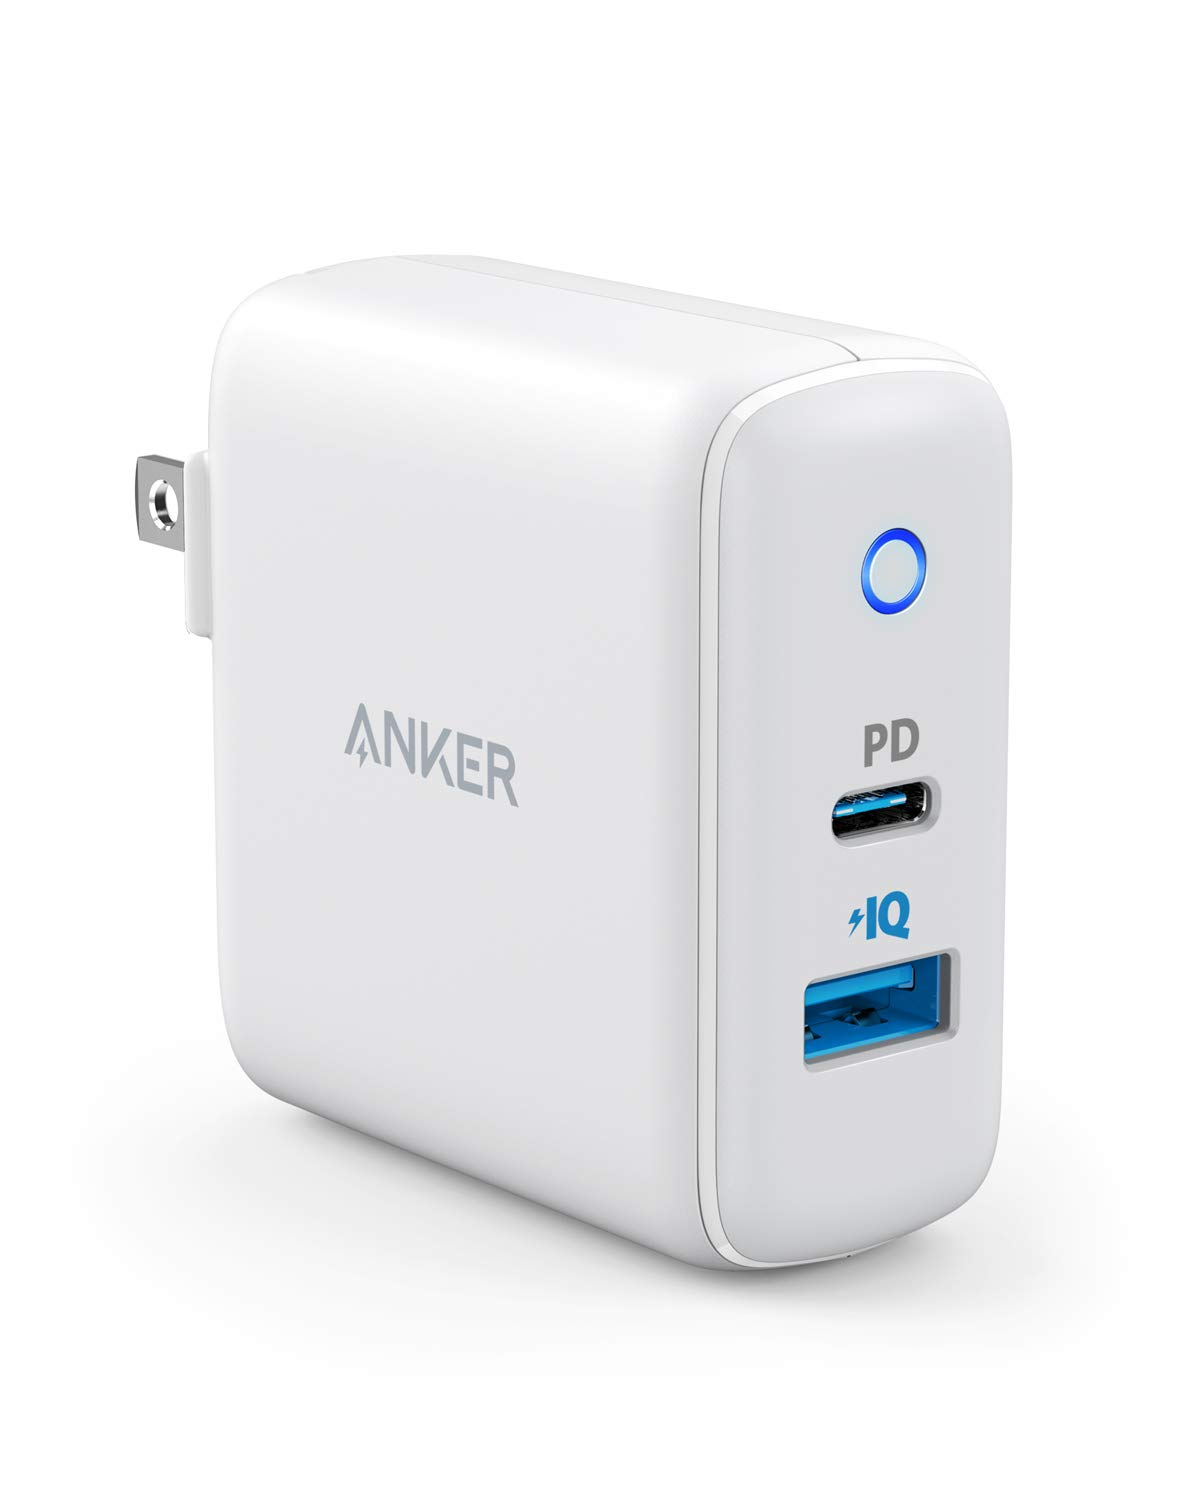 USB C Wall Charger, Anker 30W 2 Port Compact Type C Charger with 18W Power Delivery and 12W PowerIQ, PowerPort PD 2 with Foldable Plug for iPad Pro 2018, iPhone Xs/Max/XR/X/8, Pixel, S10/S9, and More